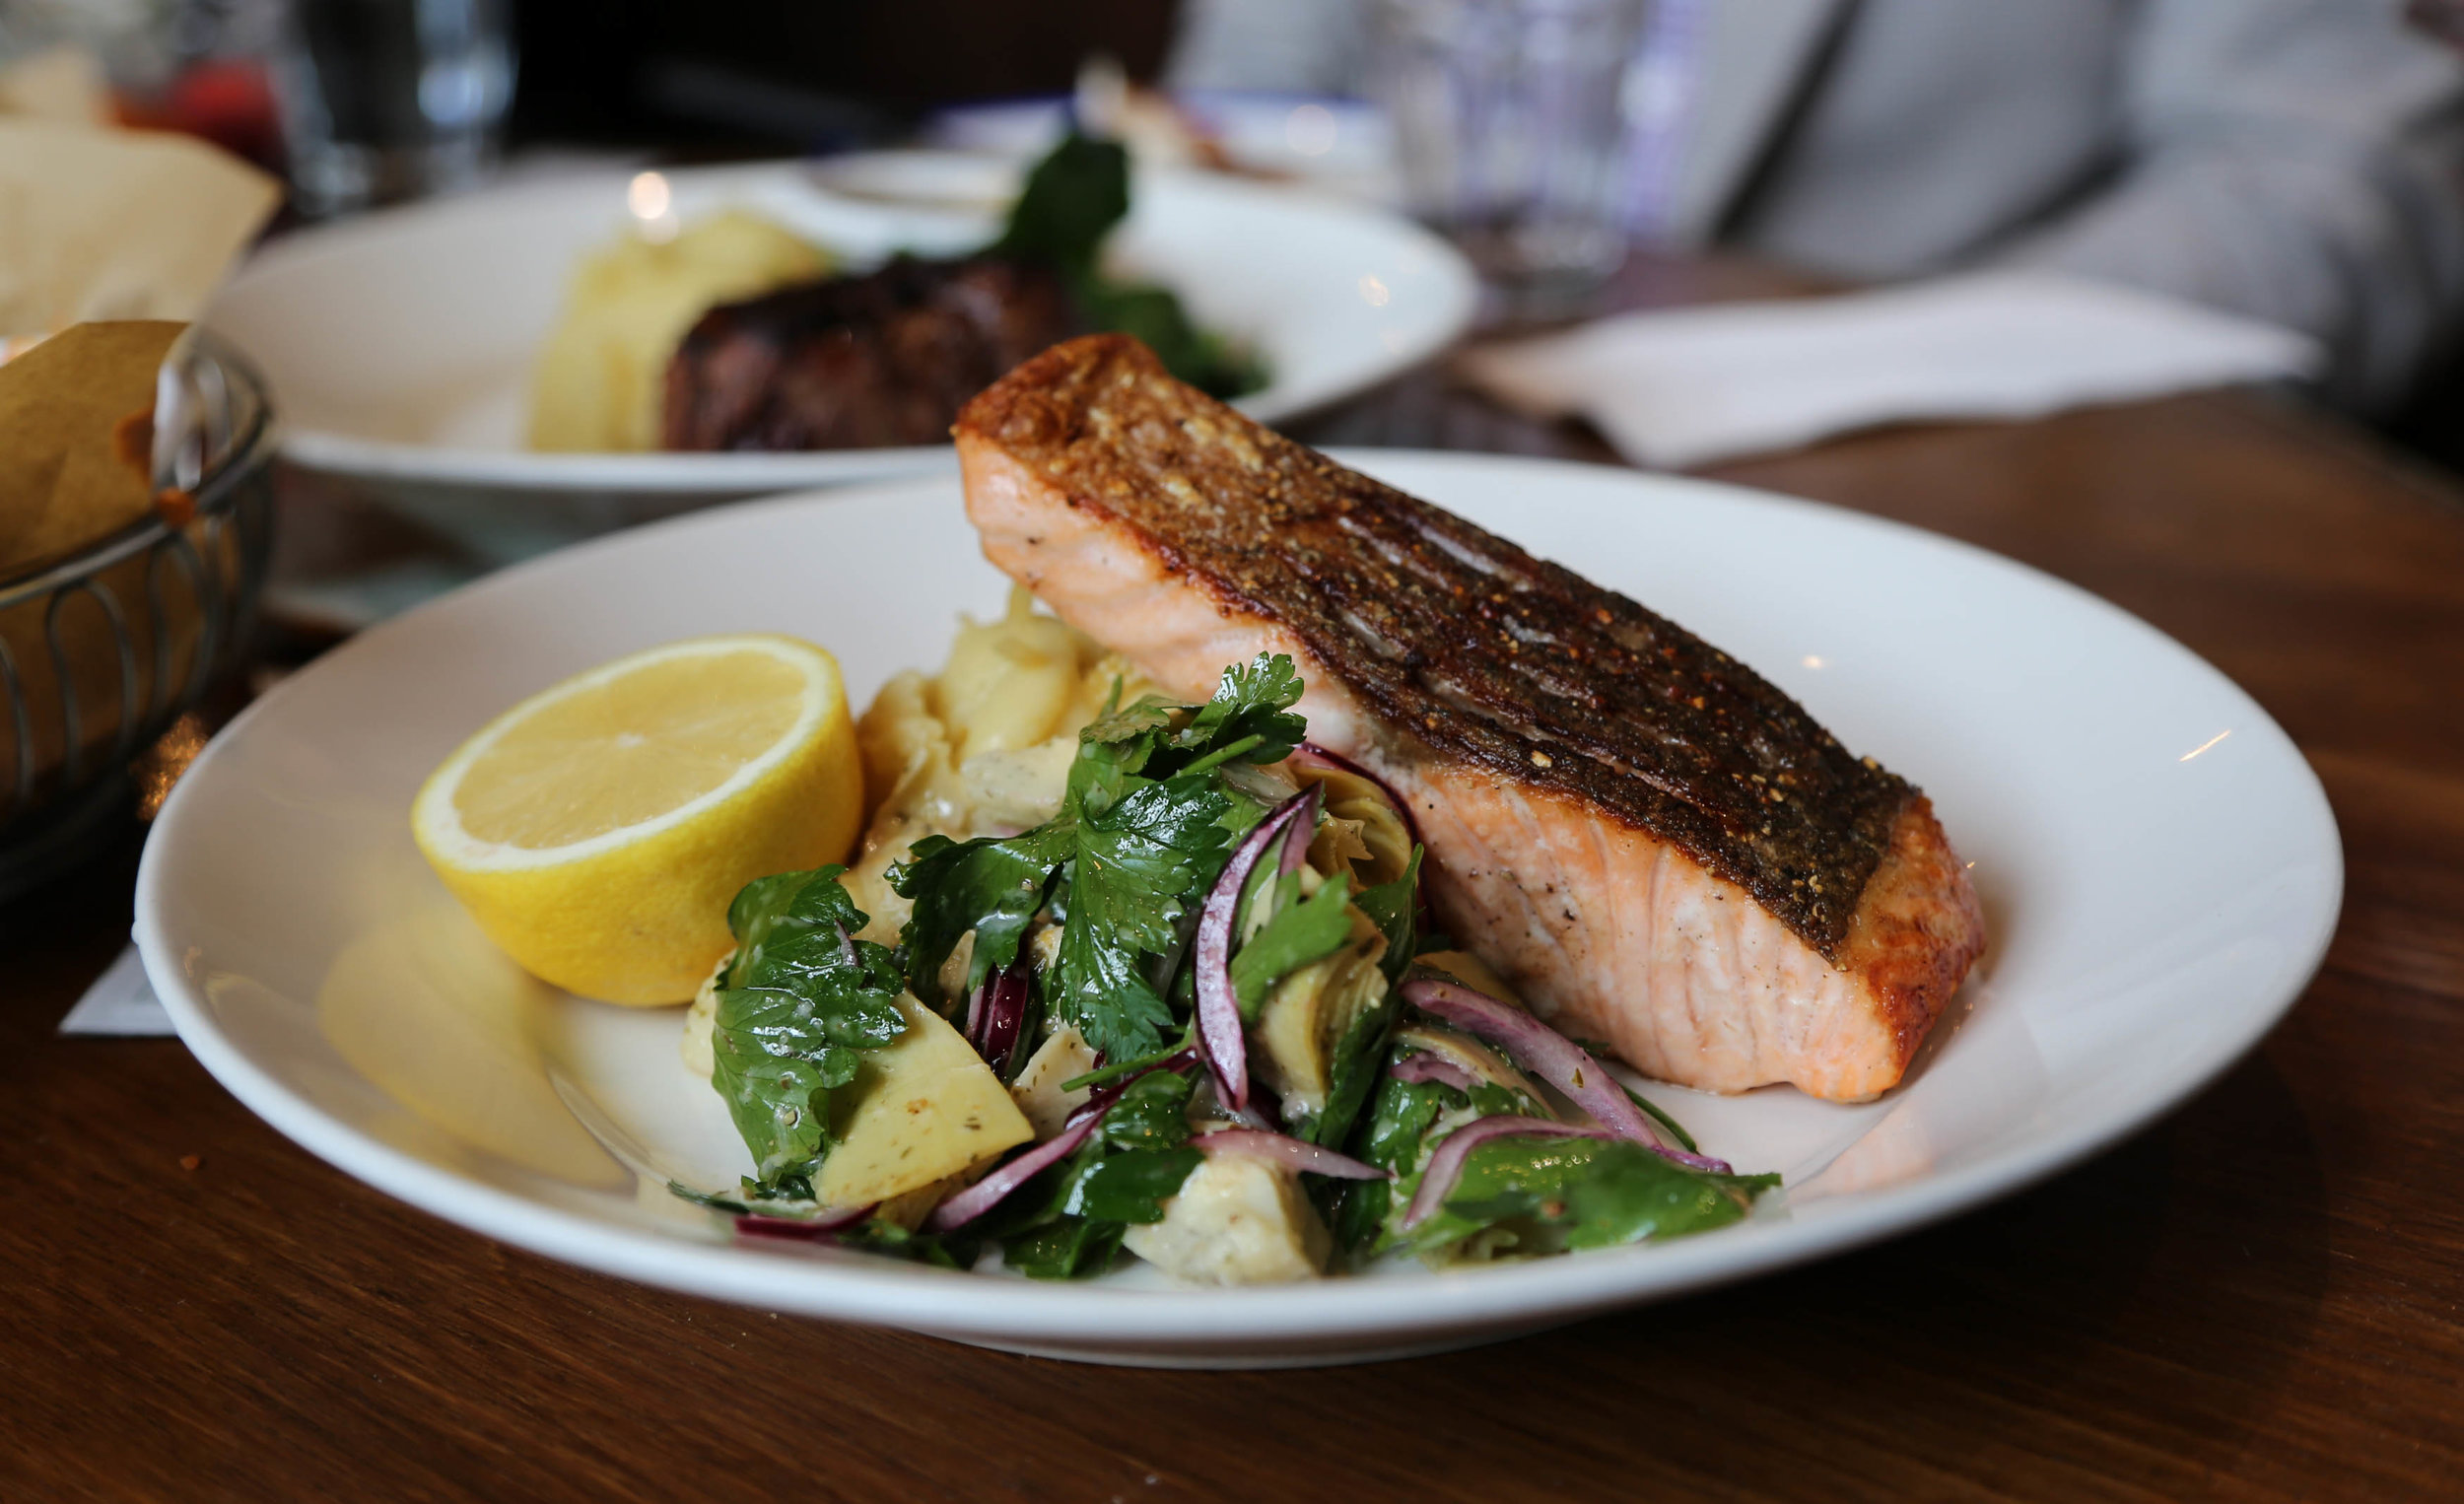 Crispy skin salmon, lemon mash, artichoke, parsley salad (gf) $22